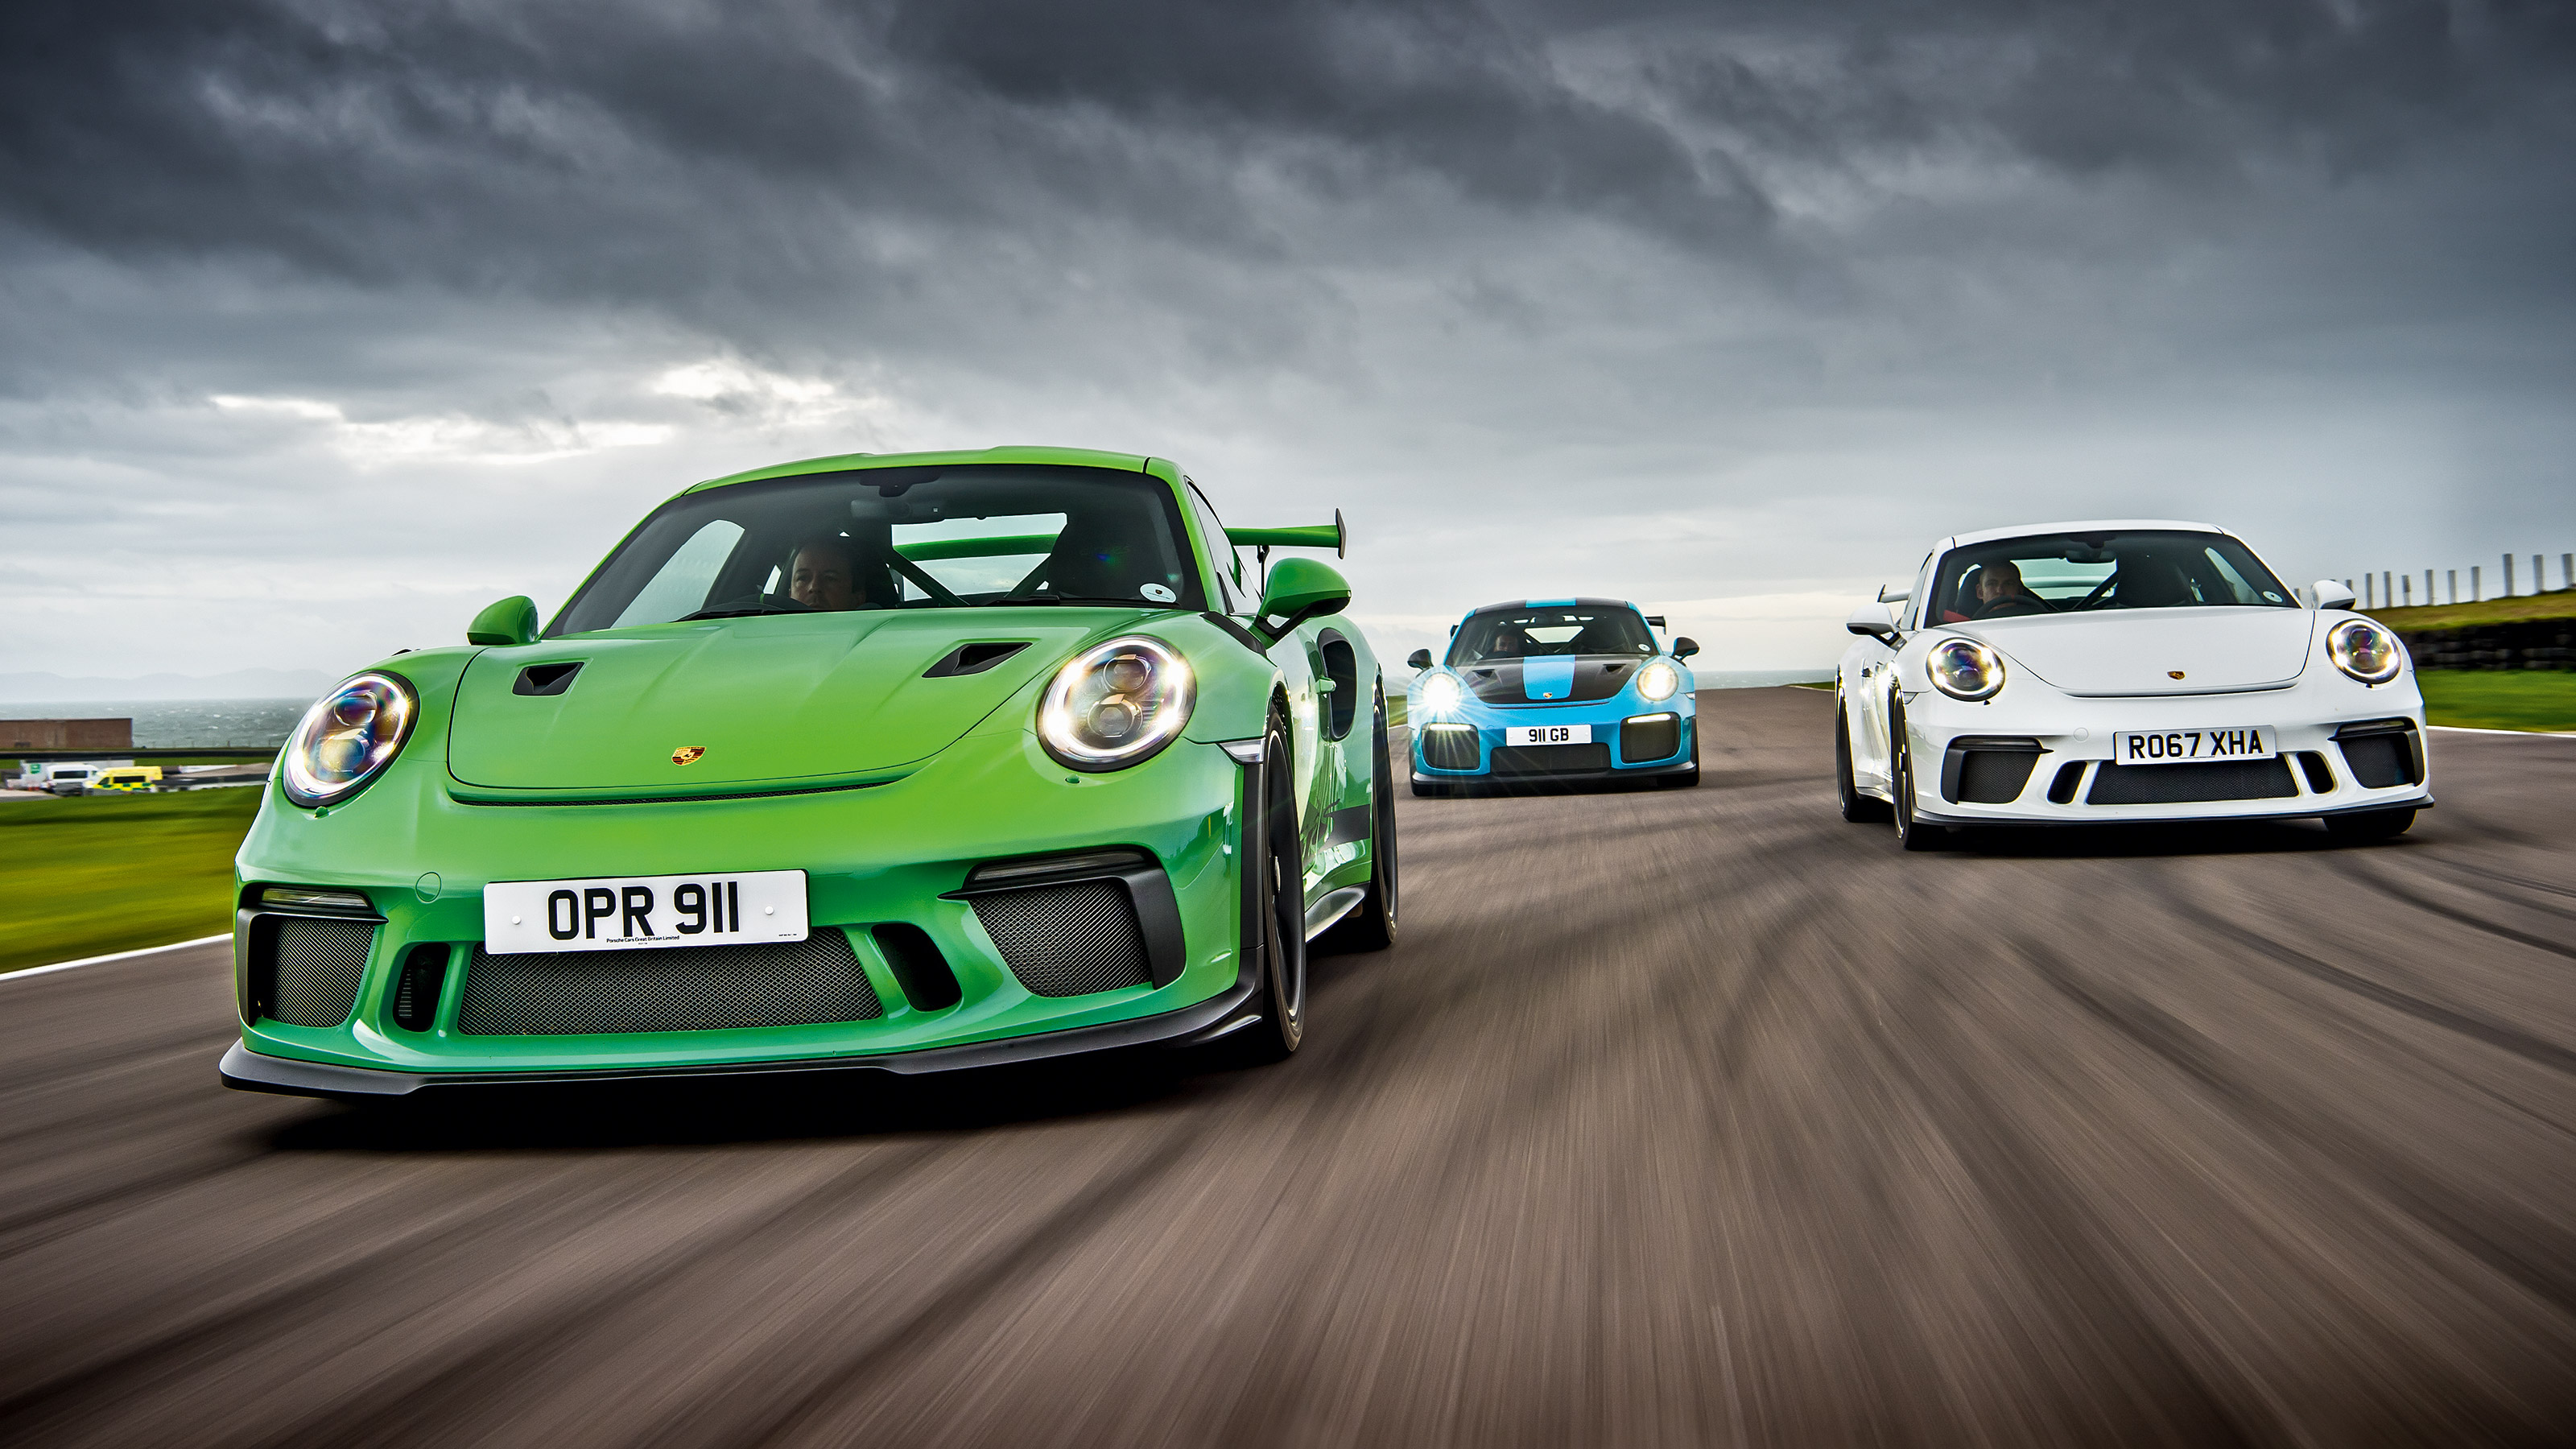 Porsche 911 Gt3 Vs Gt3 Rs Vs Gt2 Rs Track Battle Evo